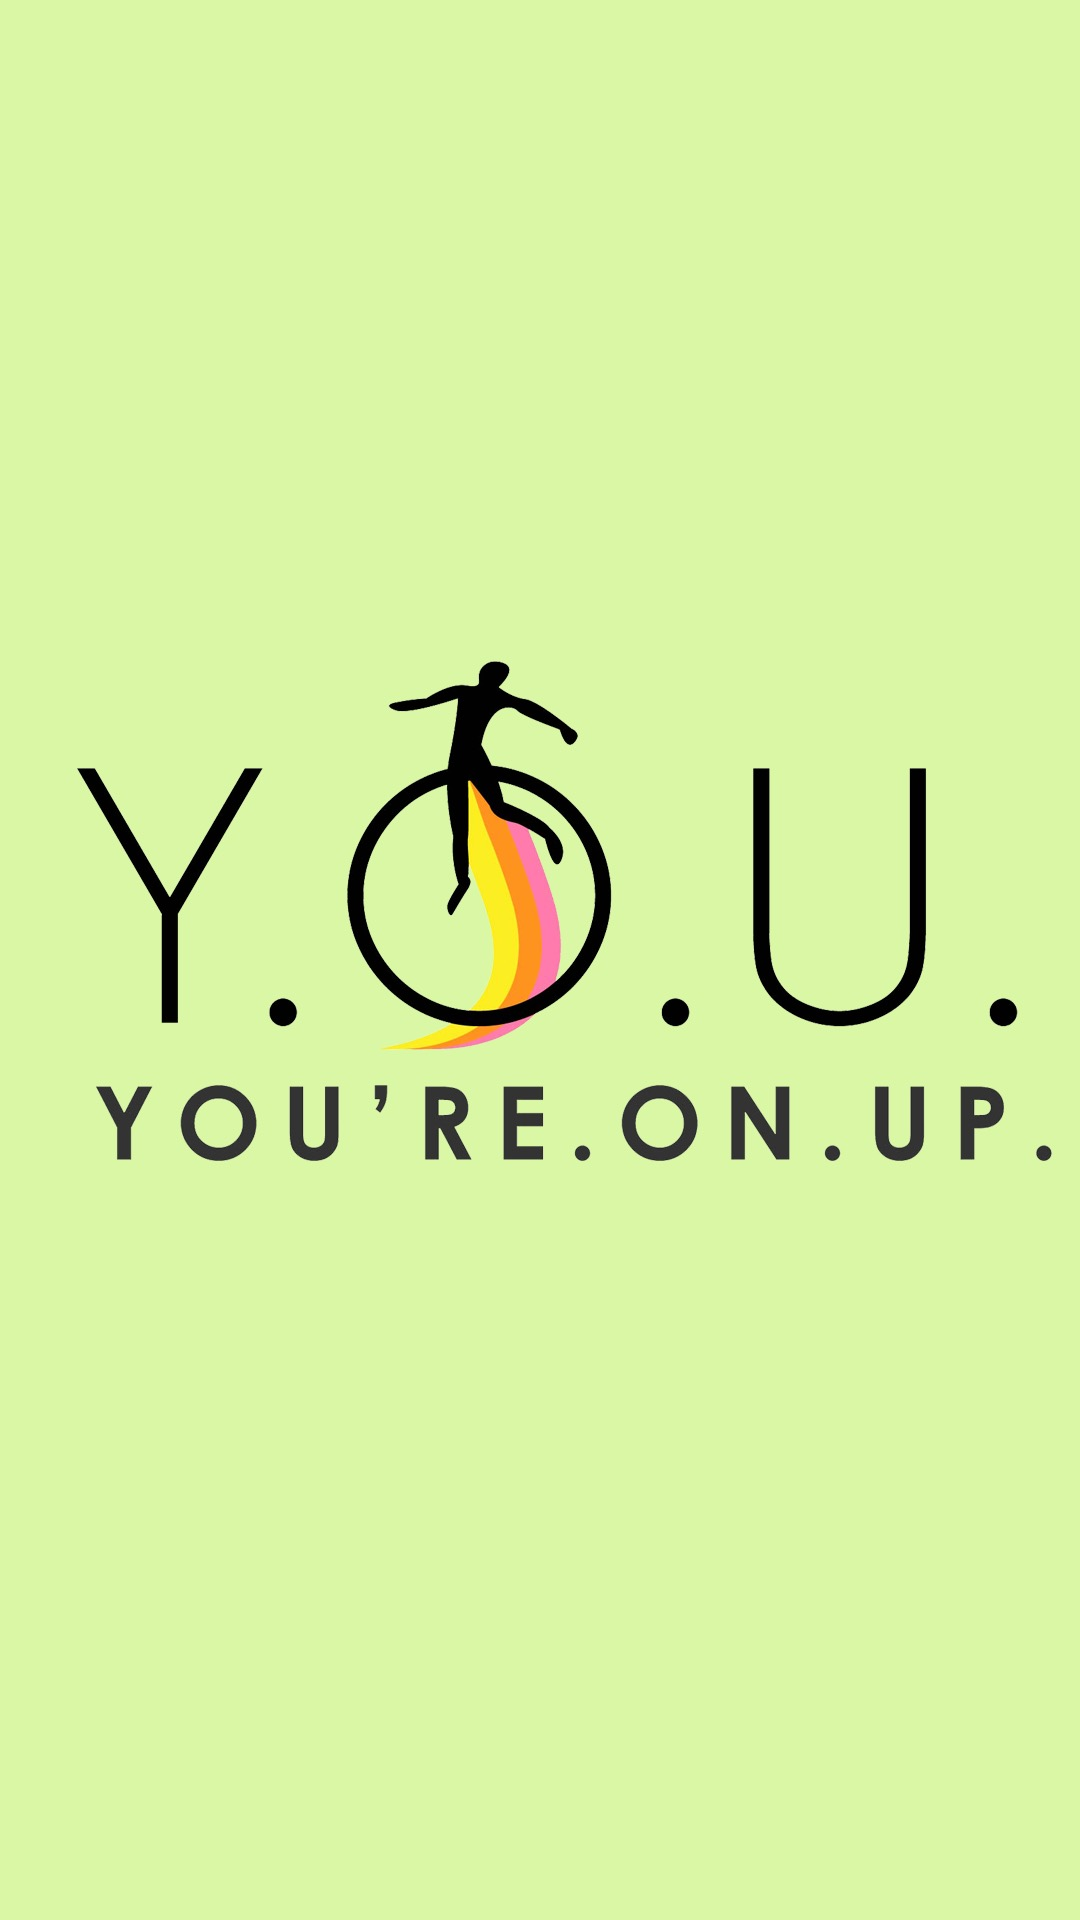 You're.On.Up's Logo